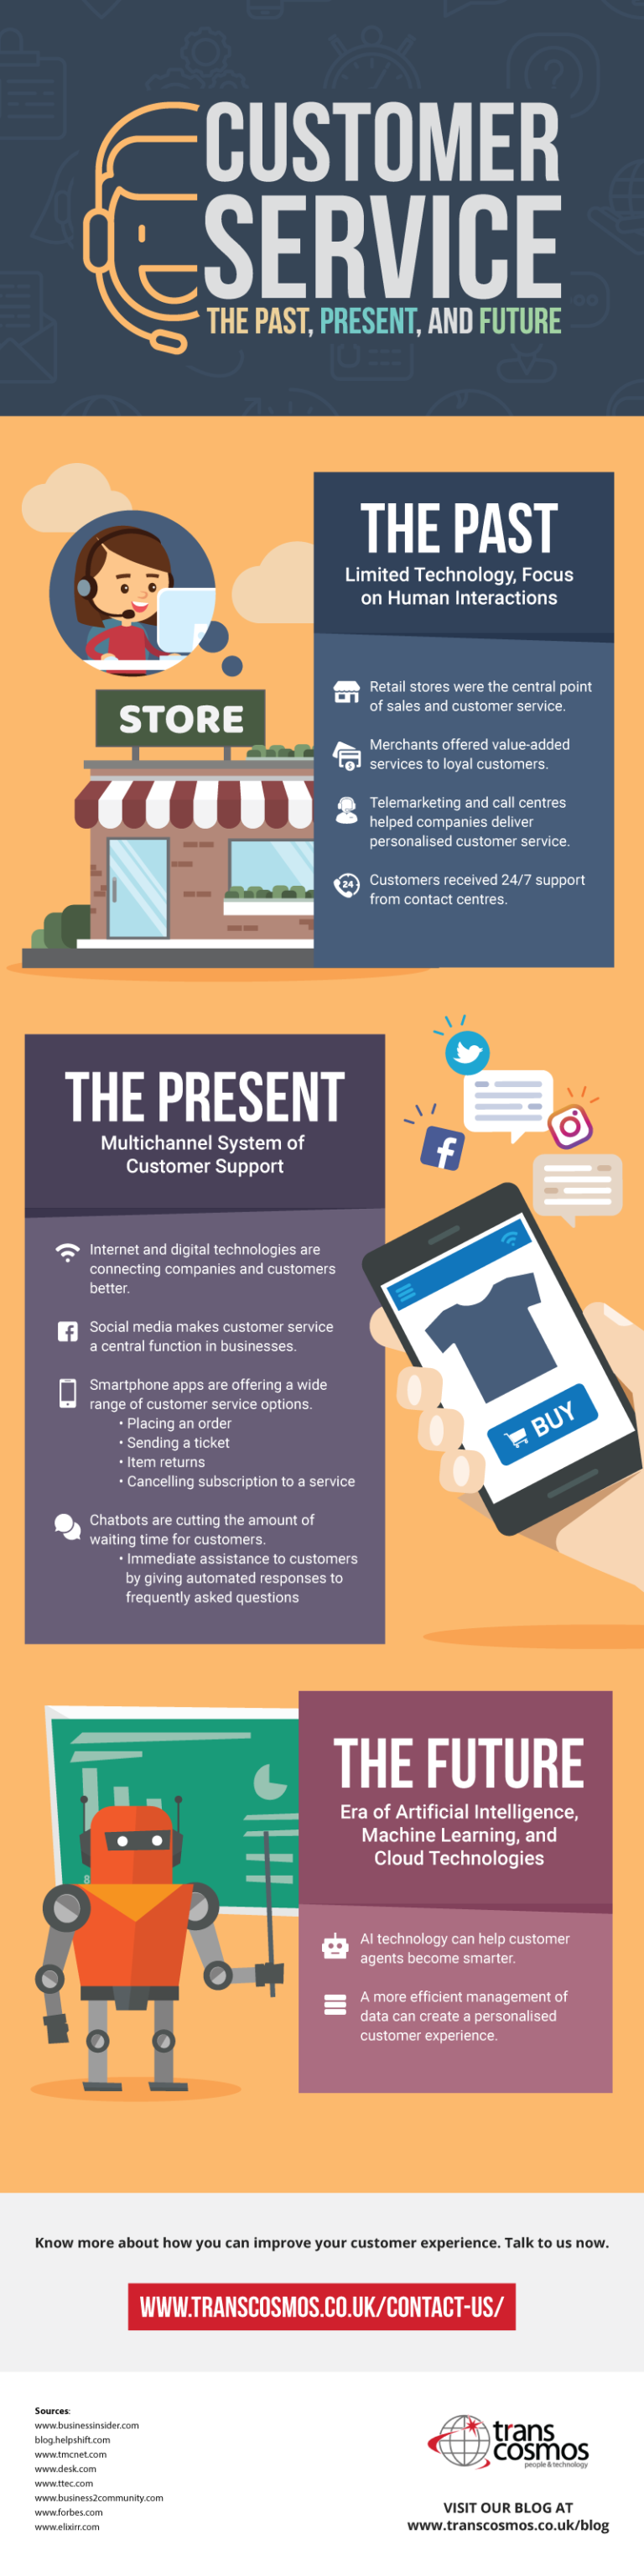 customer-service-past-present-future-infographic-plaza